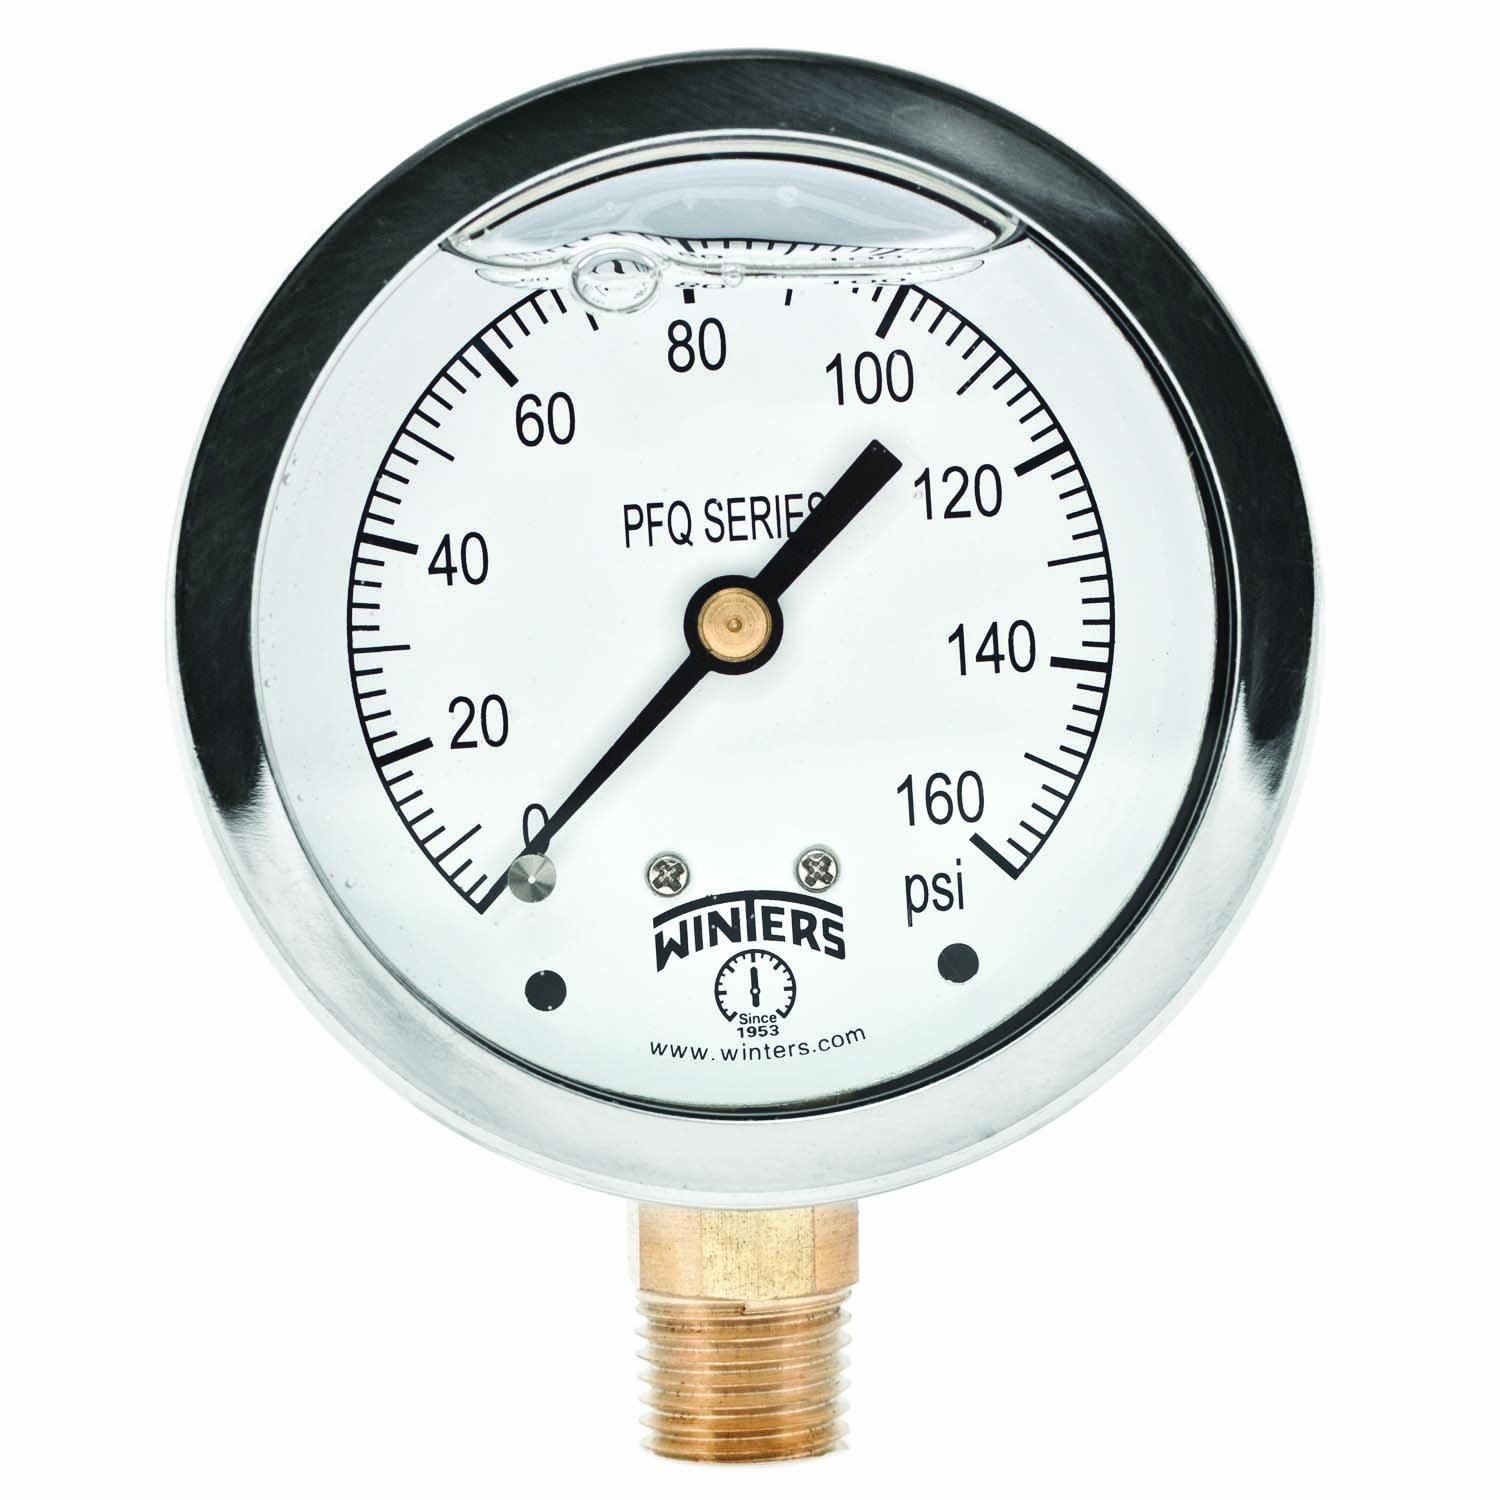 Winters PFQ Series Stainless Steel 304 Single Scale Liquid Filled Pressure Gauge with Brass Internals, 0-160 psi, 2-1/2'' Dial Display, +/-1.5% Accuracy, 1/4'' NPT Bottom Mount